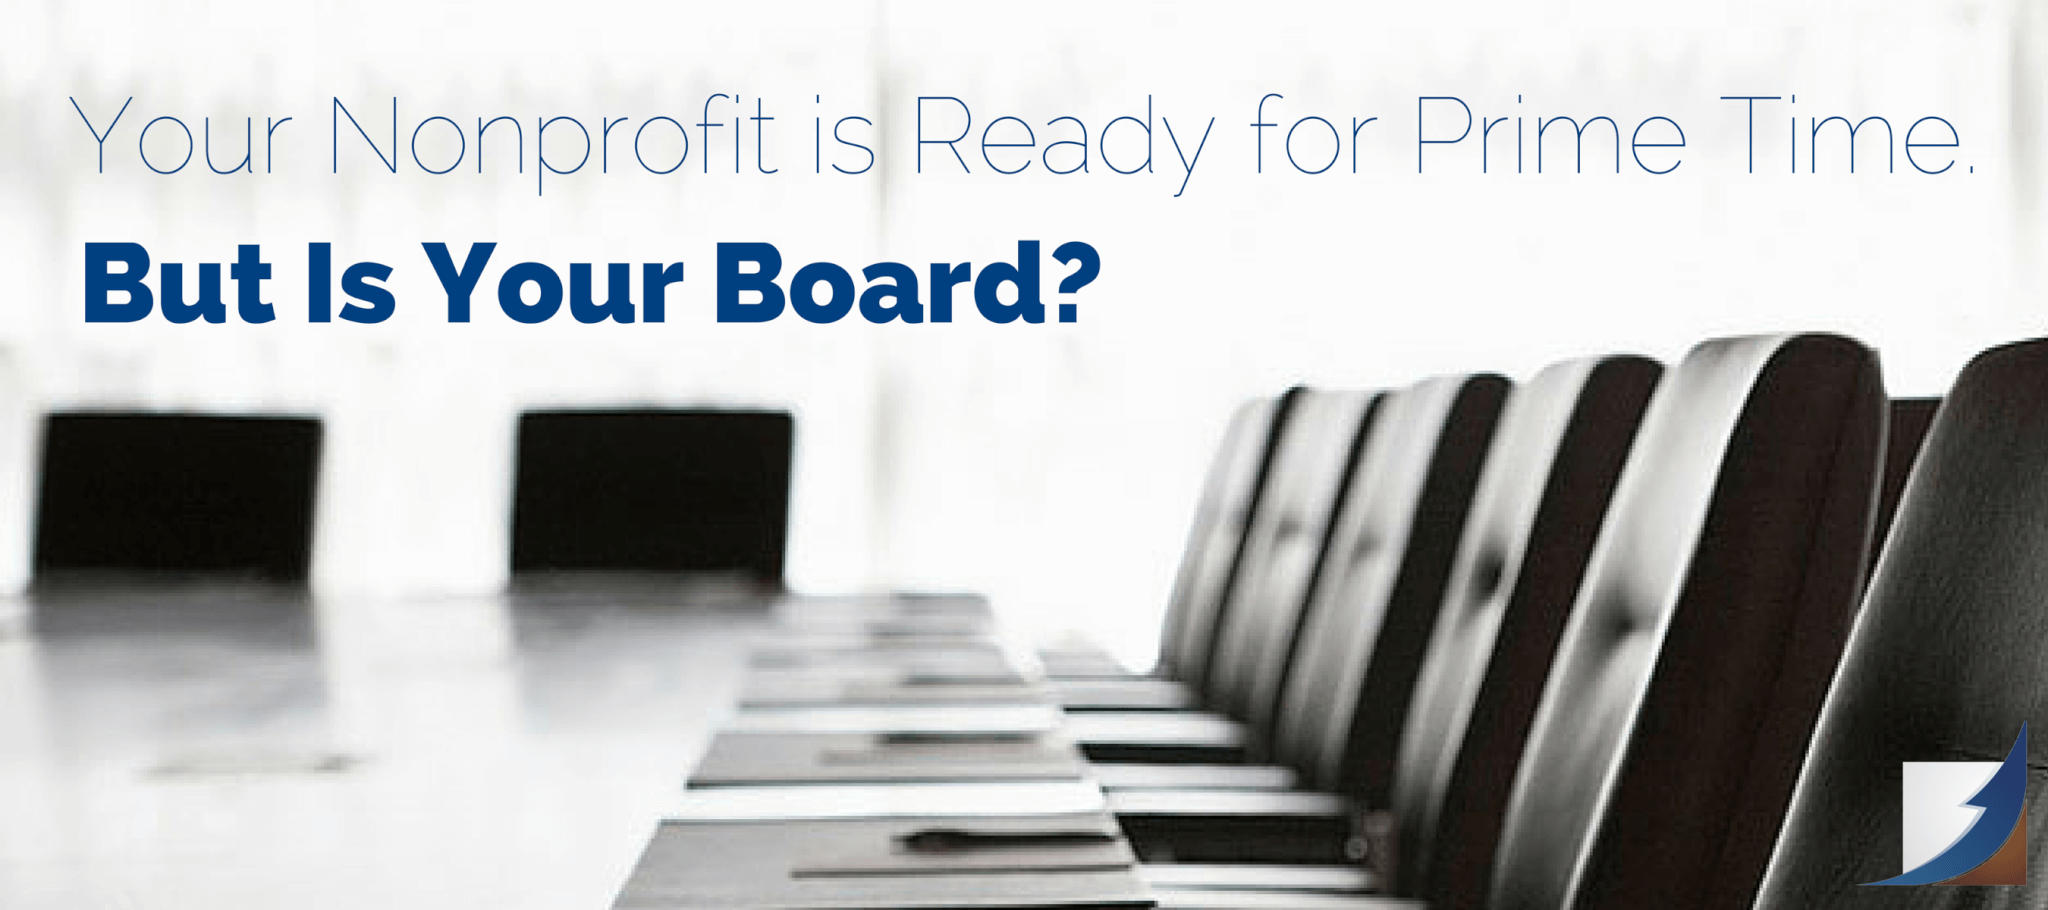 Your Nonprofit is Ready for Prime Time. But is Your Board?